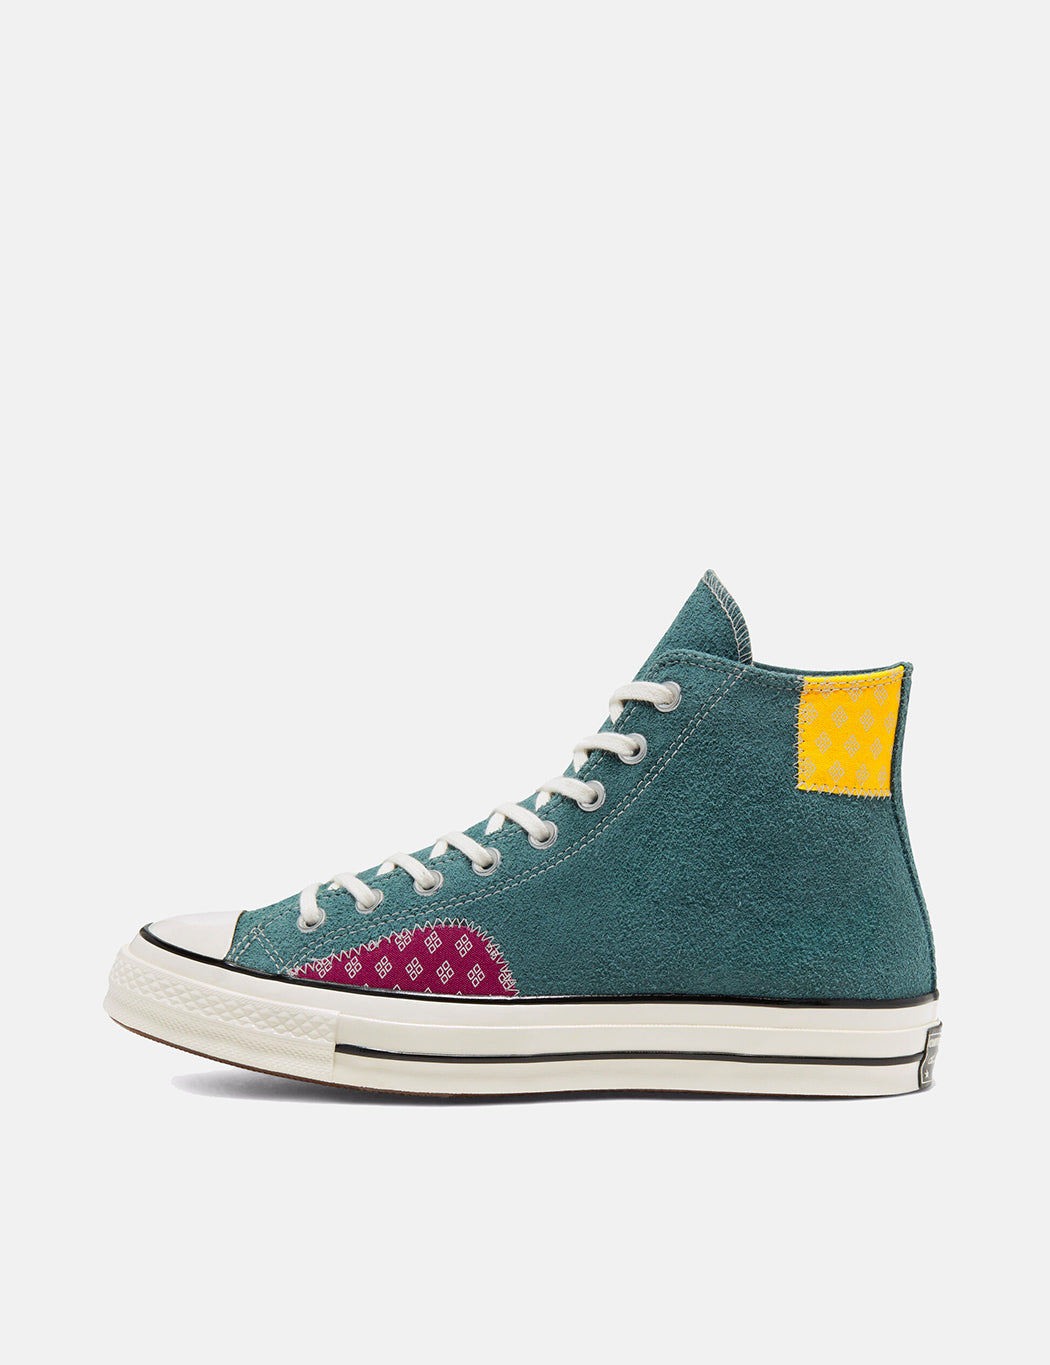 Converse Twisted Prep 70's Chuck Taylor Hi (166853C) - Faded Spruce/Amarillo